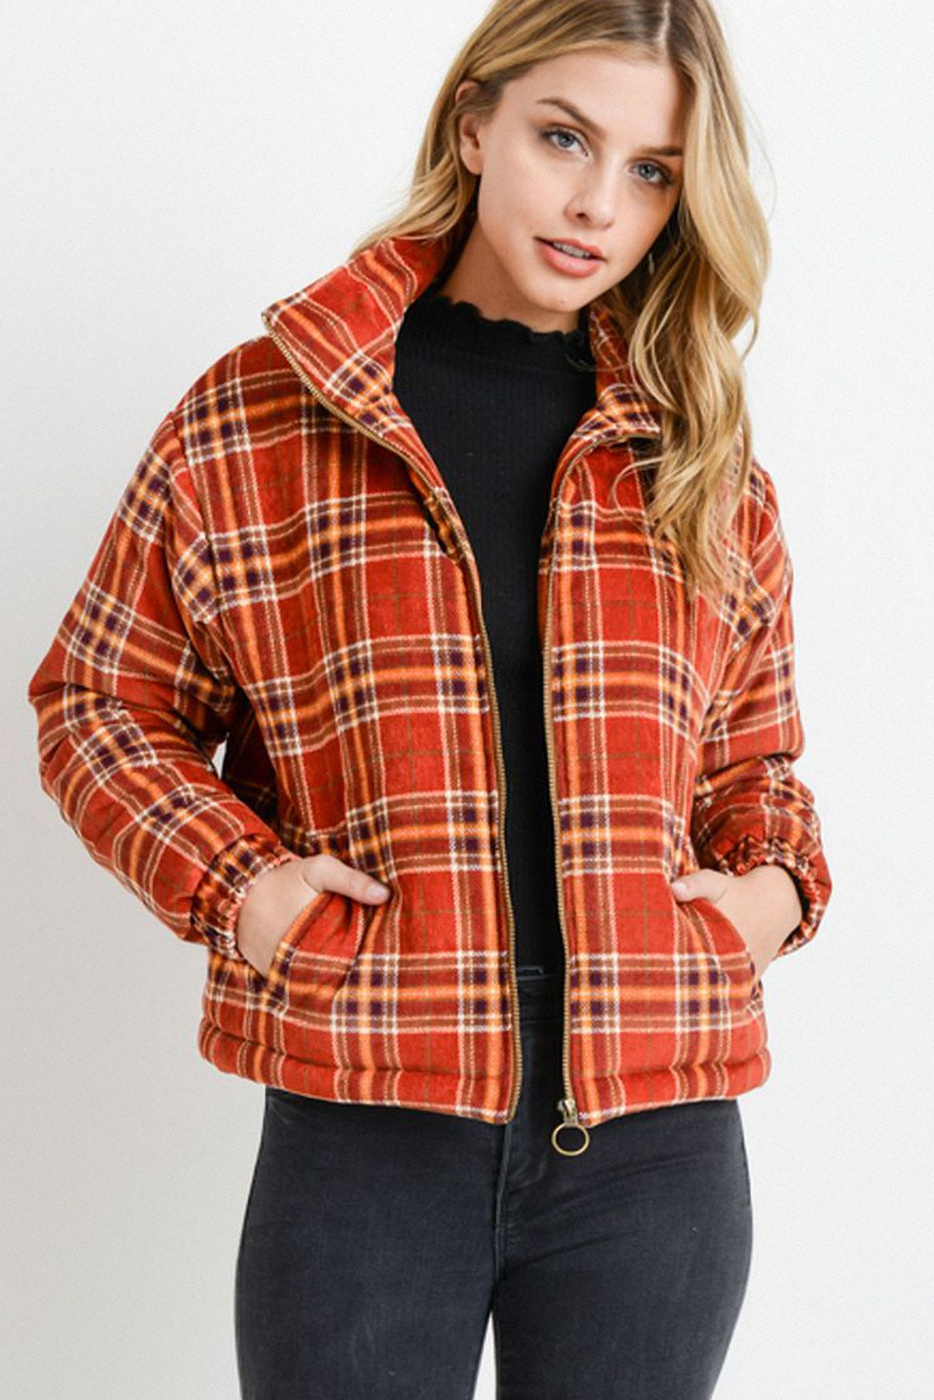 Plaid Puffy Long Sleeve Jacket - orangeshine.com